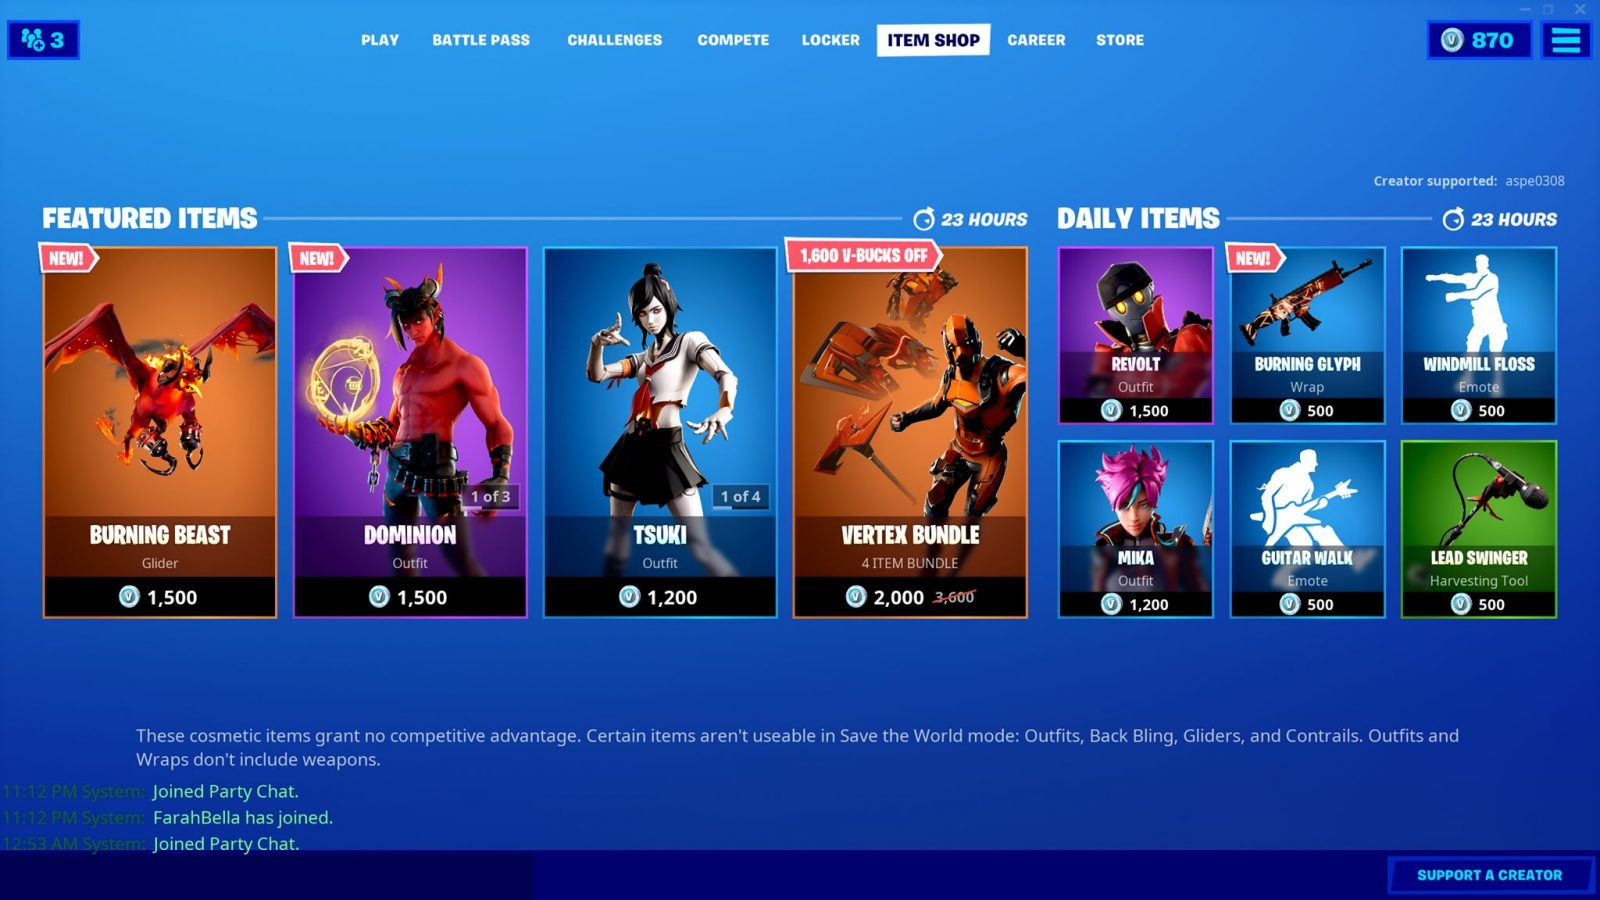 Today's Item Shop! New glider, wrap, and outfit, as well as the Vertex Bundle!  …